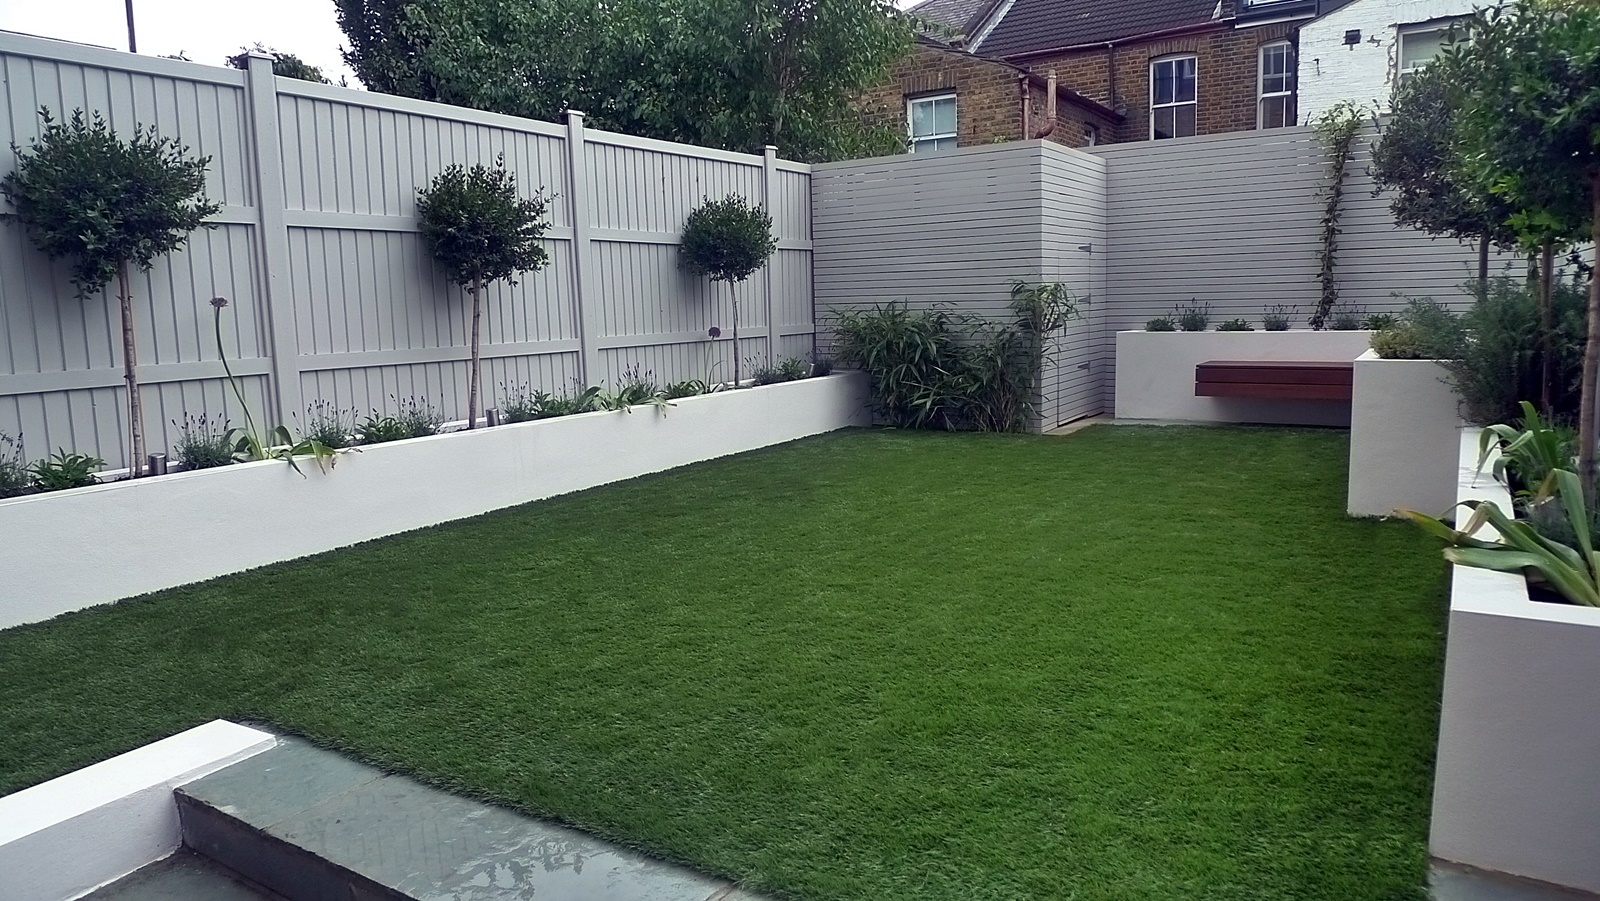 bespoke hardwood slatted privacy screen shed storage artificial grass modern garden design cheam putney richmond kingston wandsworth london